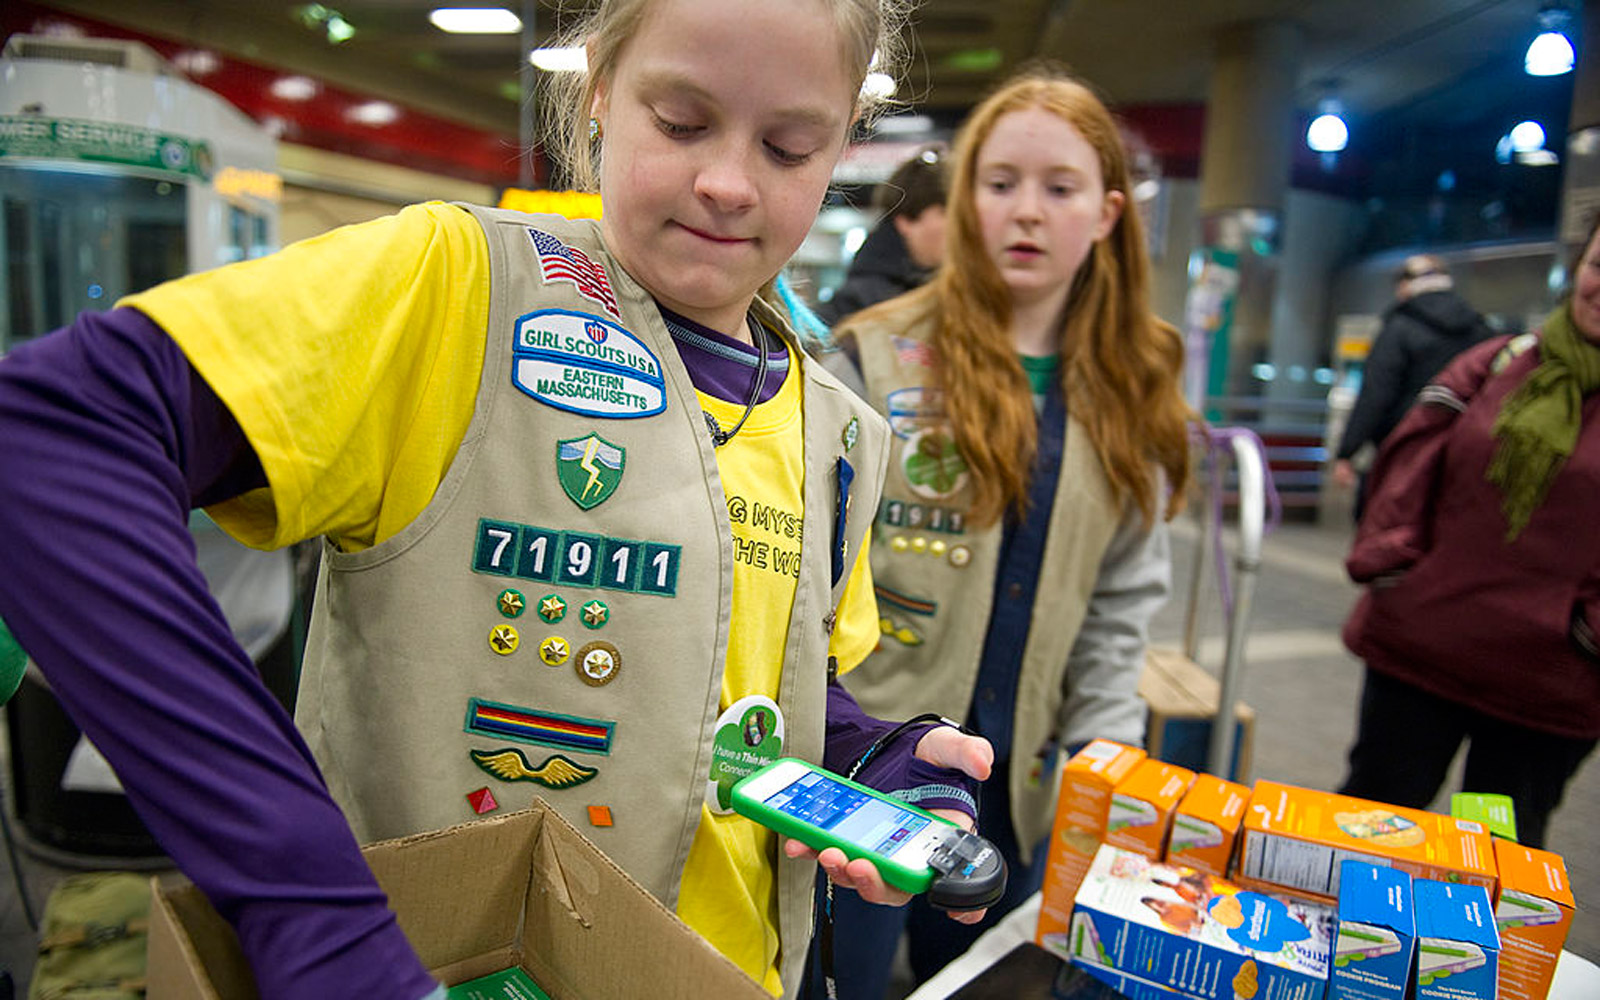 Girl Scouts Can Now Earn 15 New Badges for Science, Technology, Engineering and Math